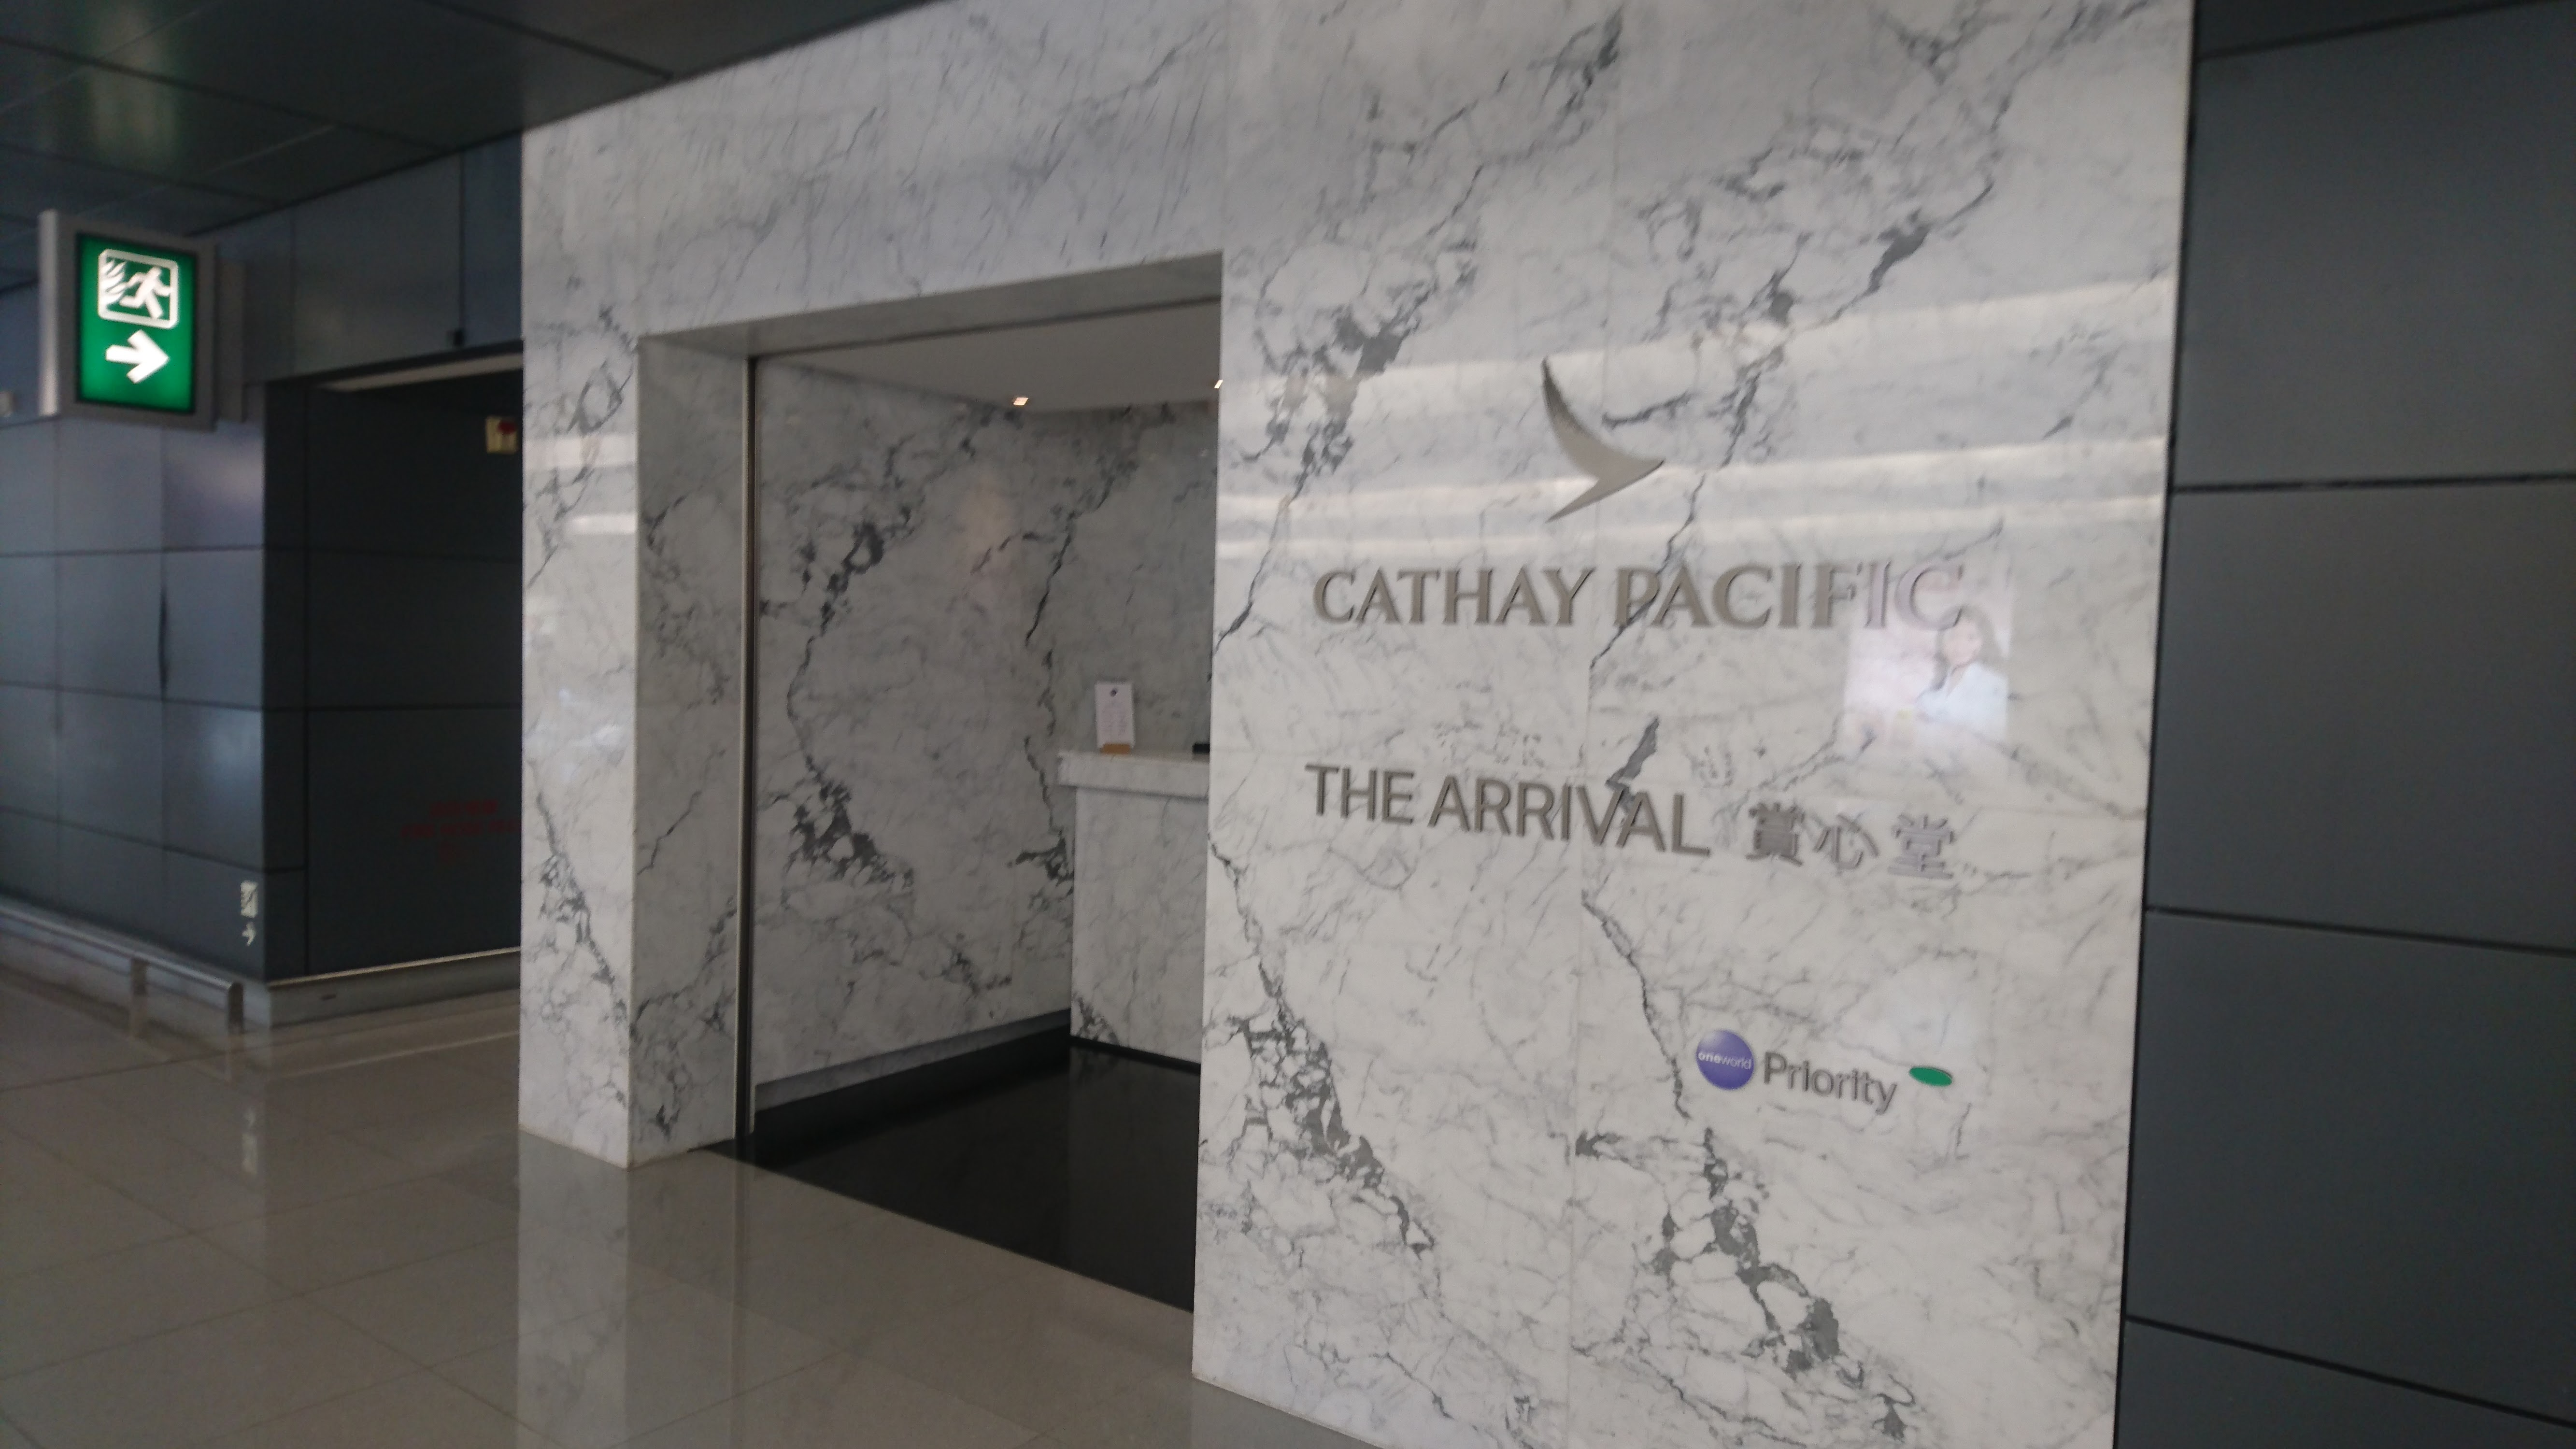 CATHAY PACIFIC ラウンジ「ザ・アライバル(THE ARRIVAL)」